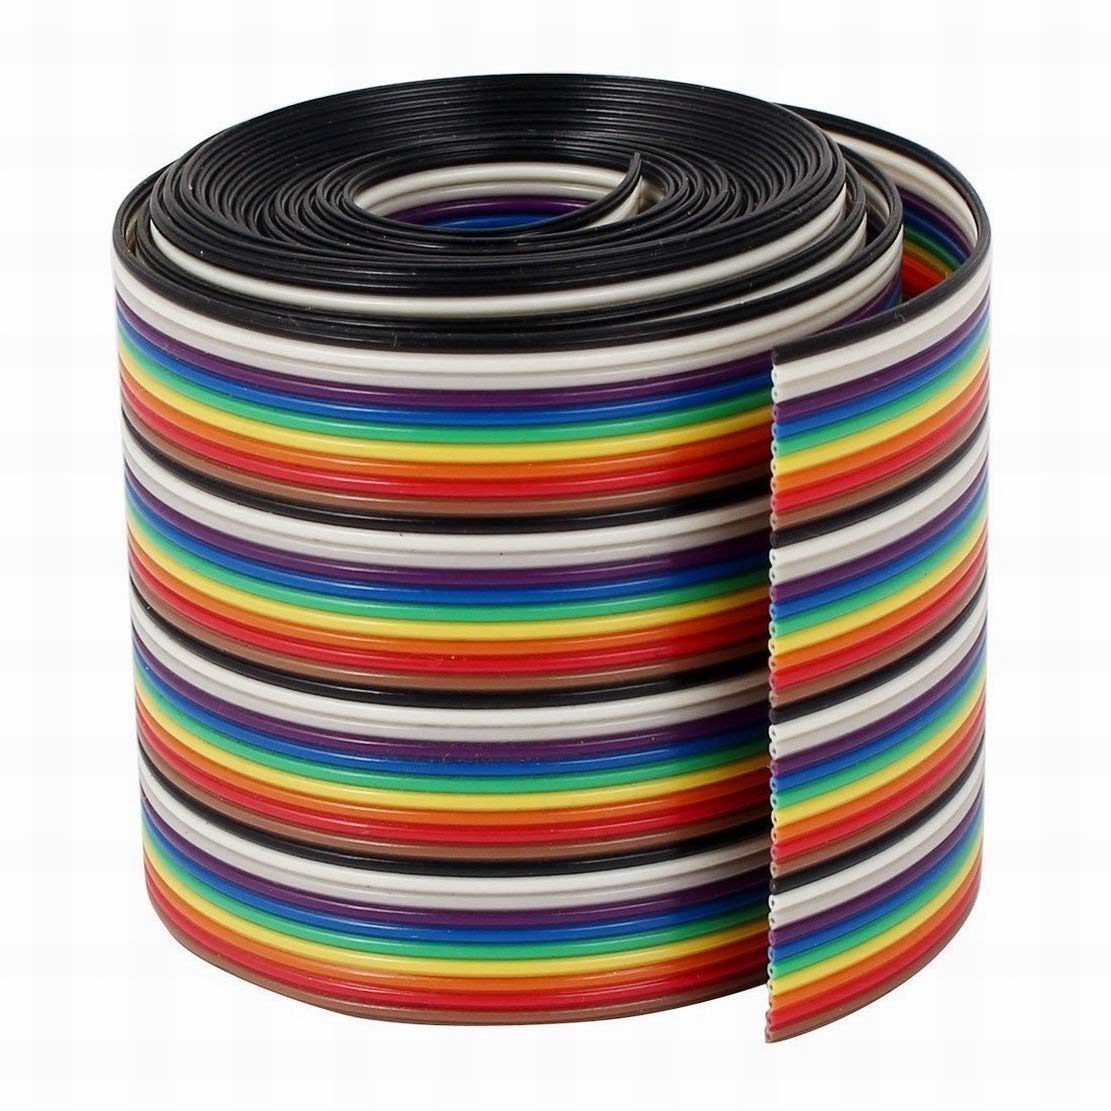 Fuxell Ribbon IDC Cable Wire Rainbow Cable Flat Color Rainbow, 2 m, 6.6', 40 Way, 40 Pin